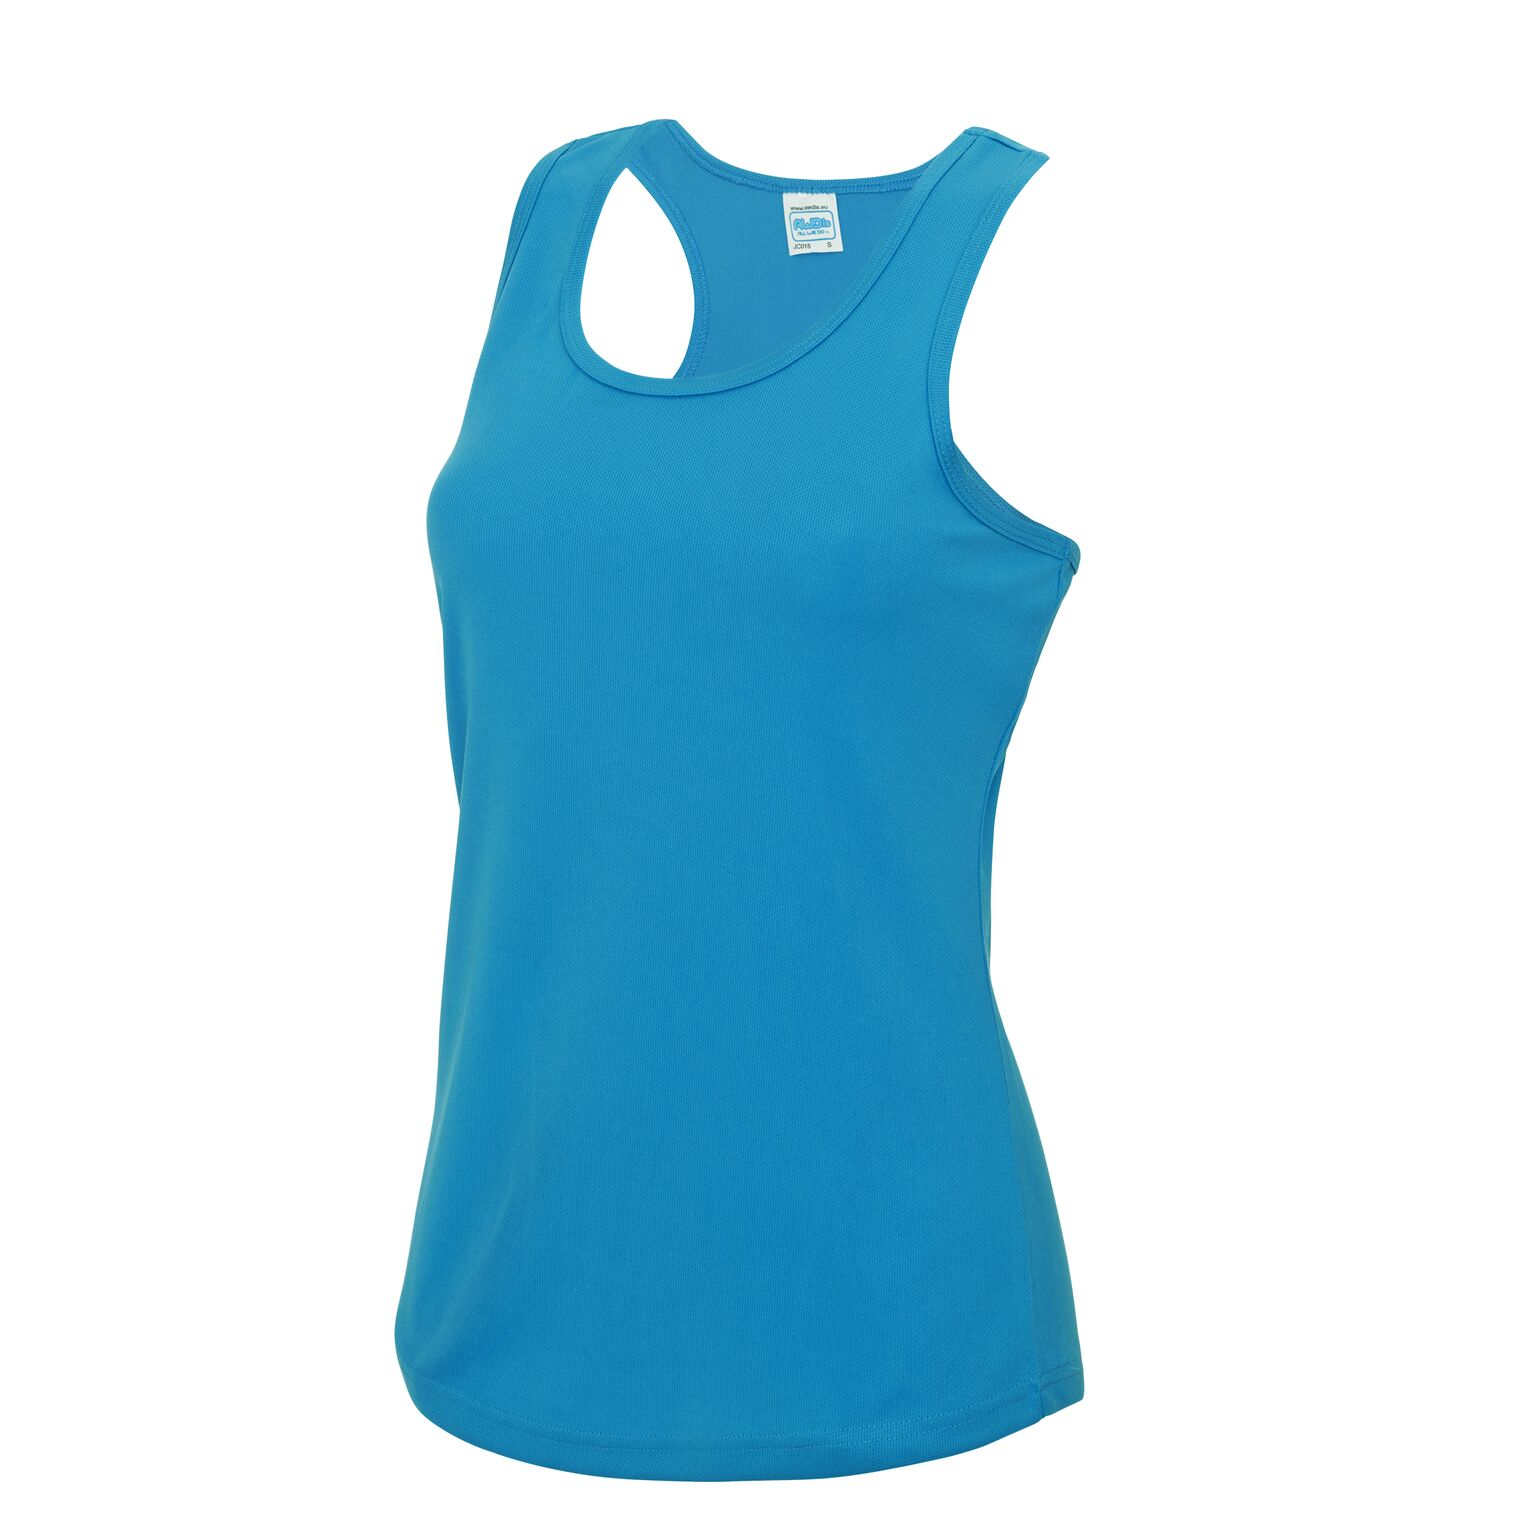 blue vest womens.jpeg